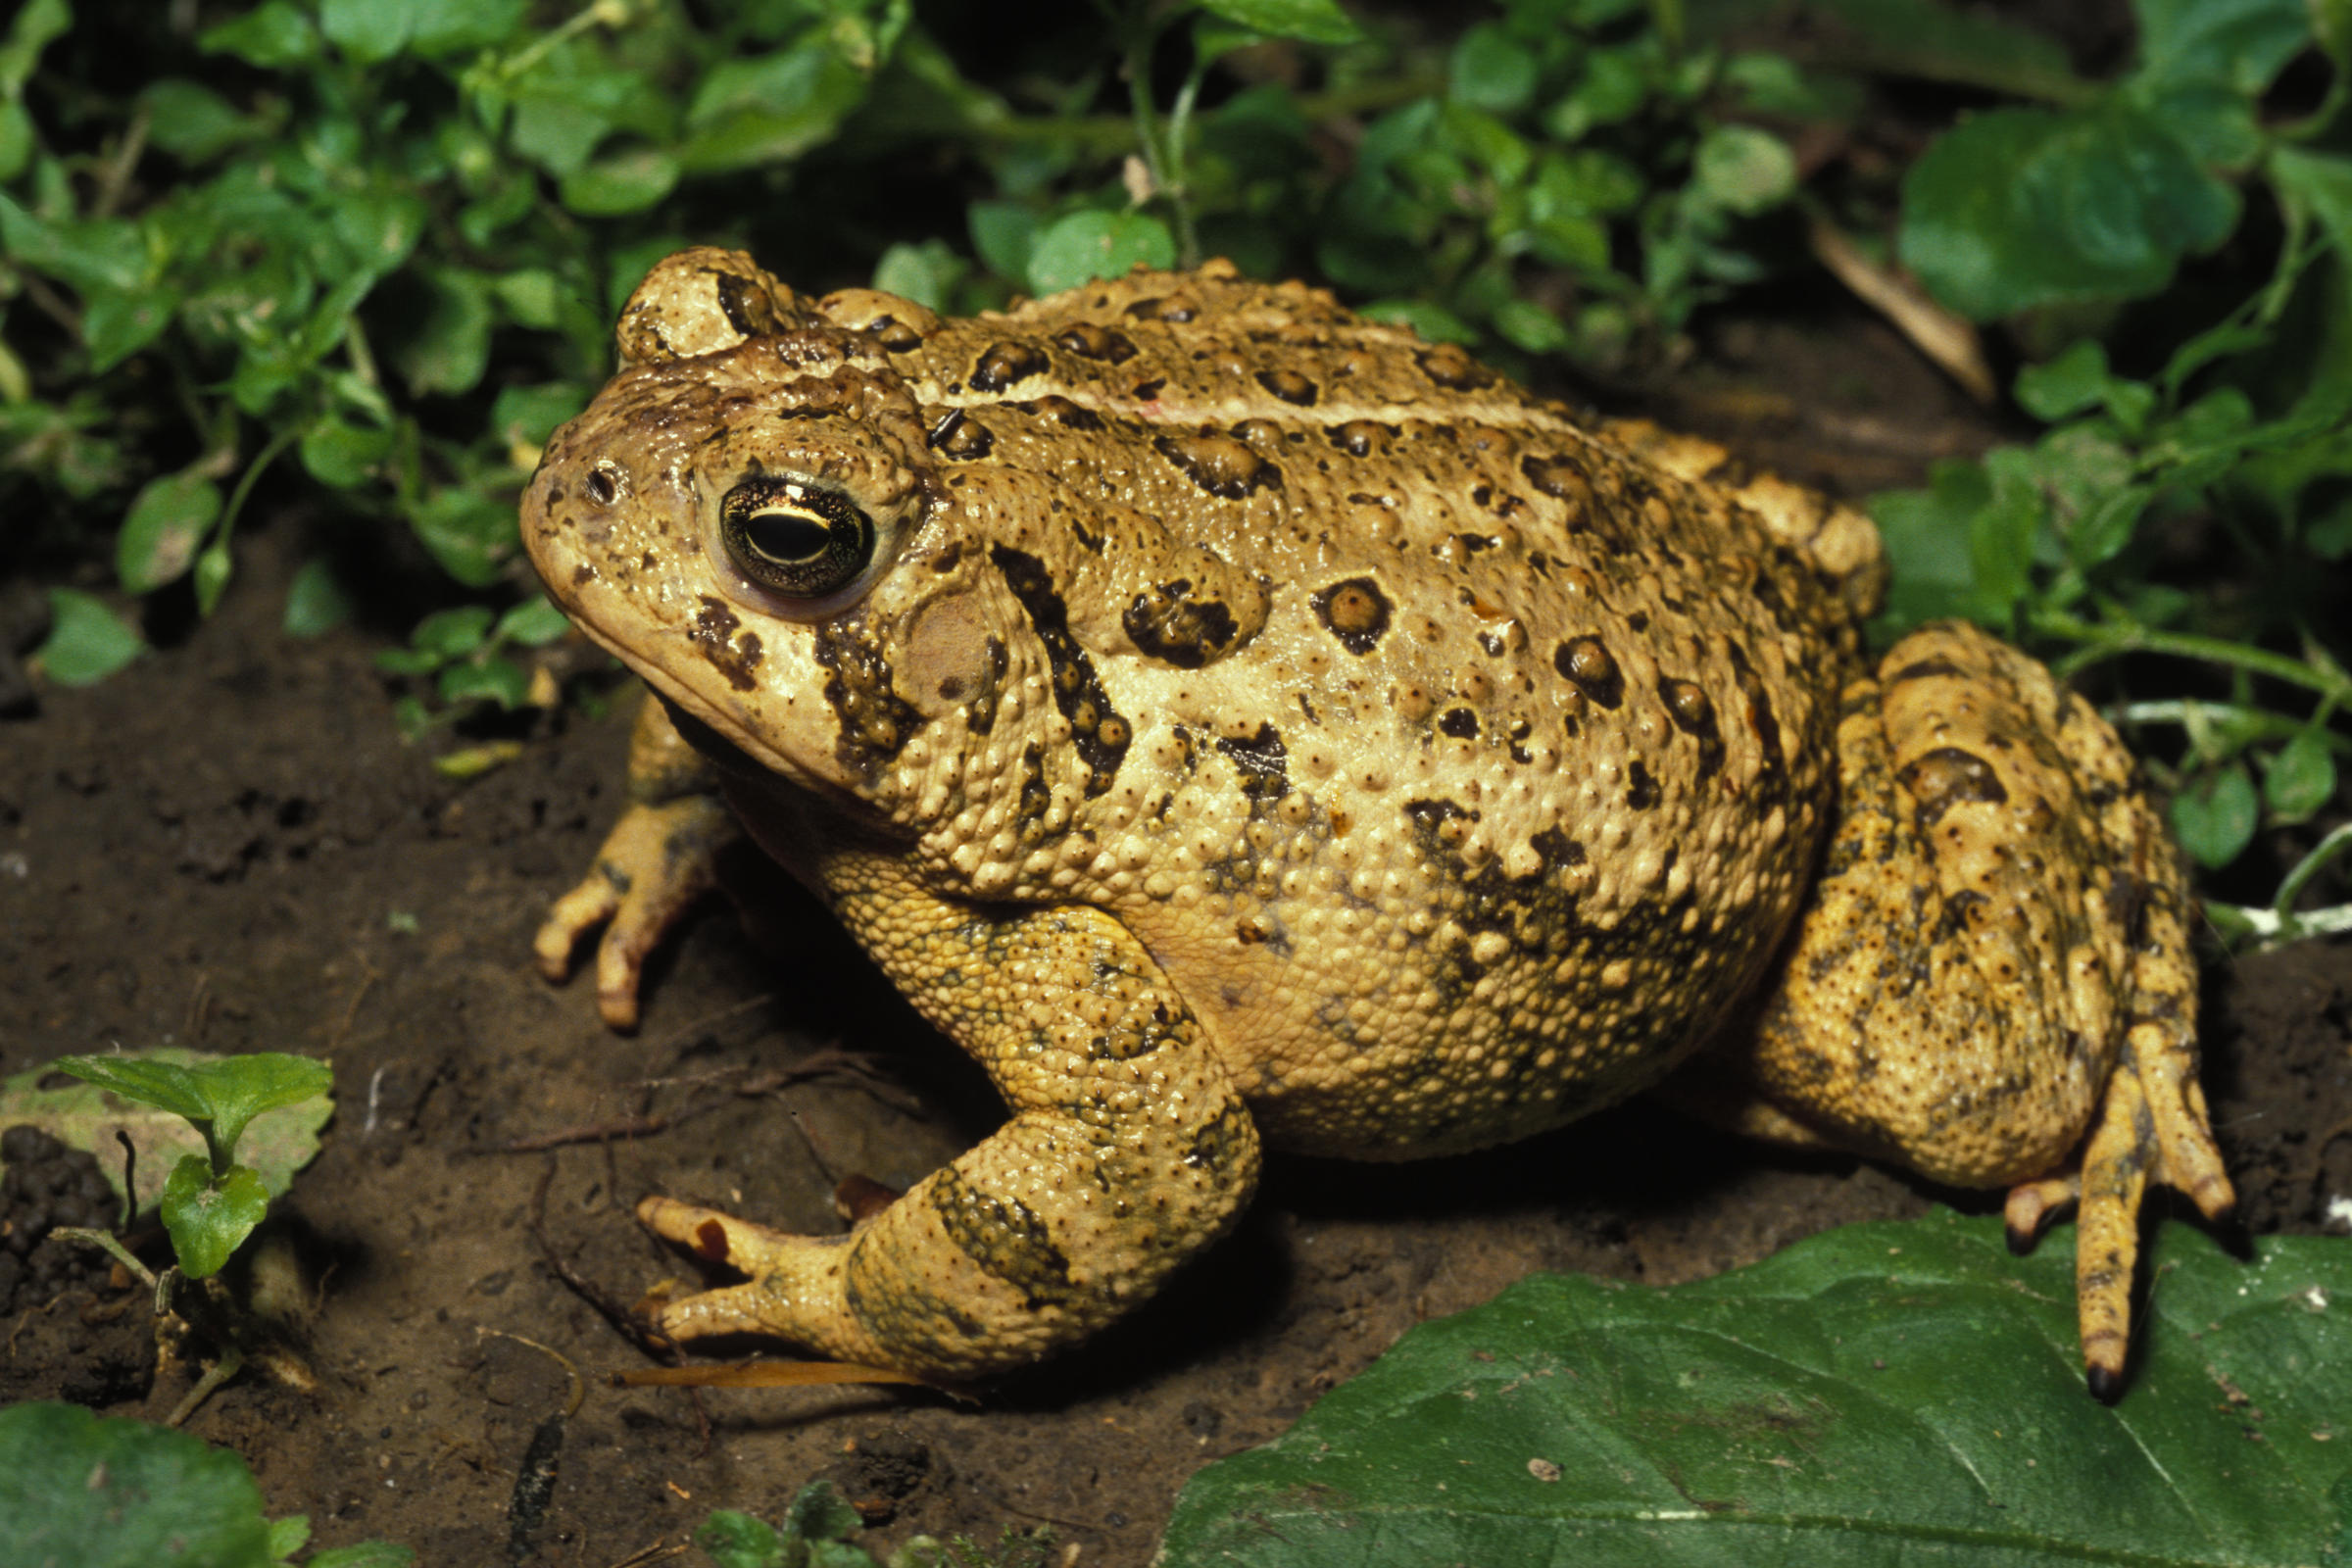 american toads fill the night sky with their musical trill